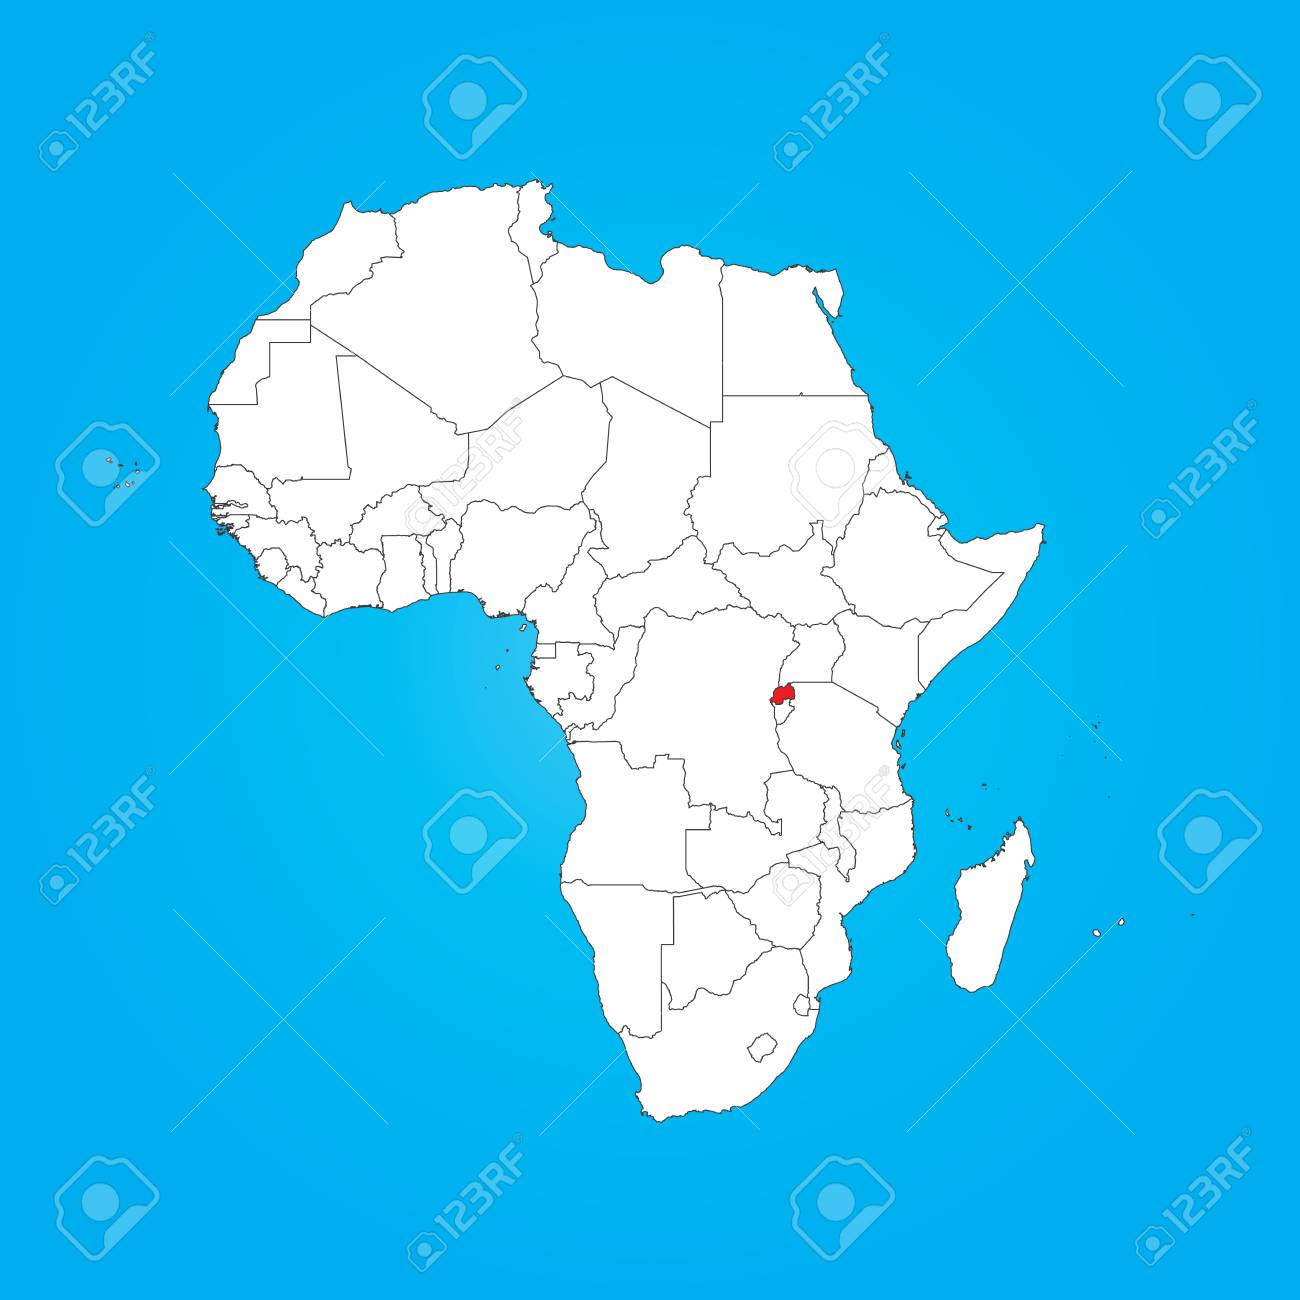 A Map Of Africa With A Selected Country Of Rwanda Stock Photo